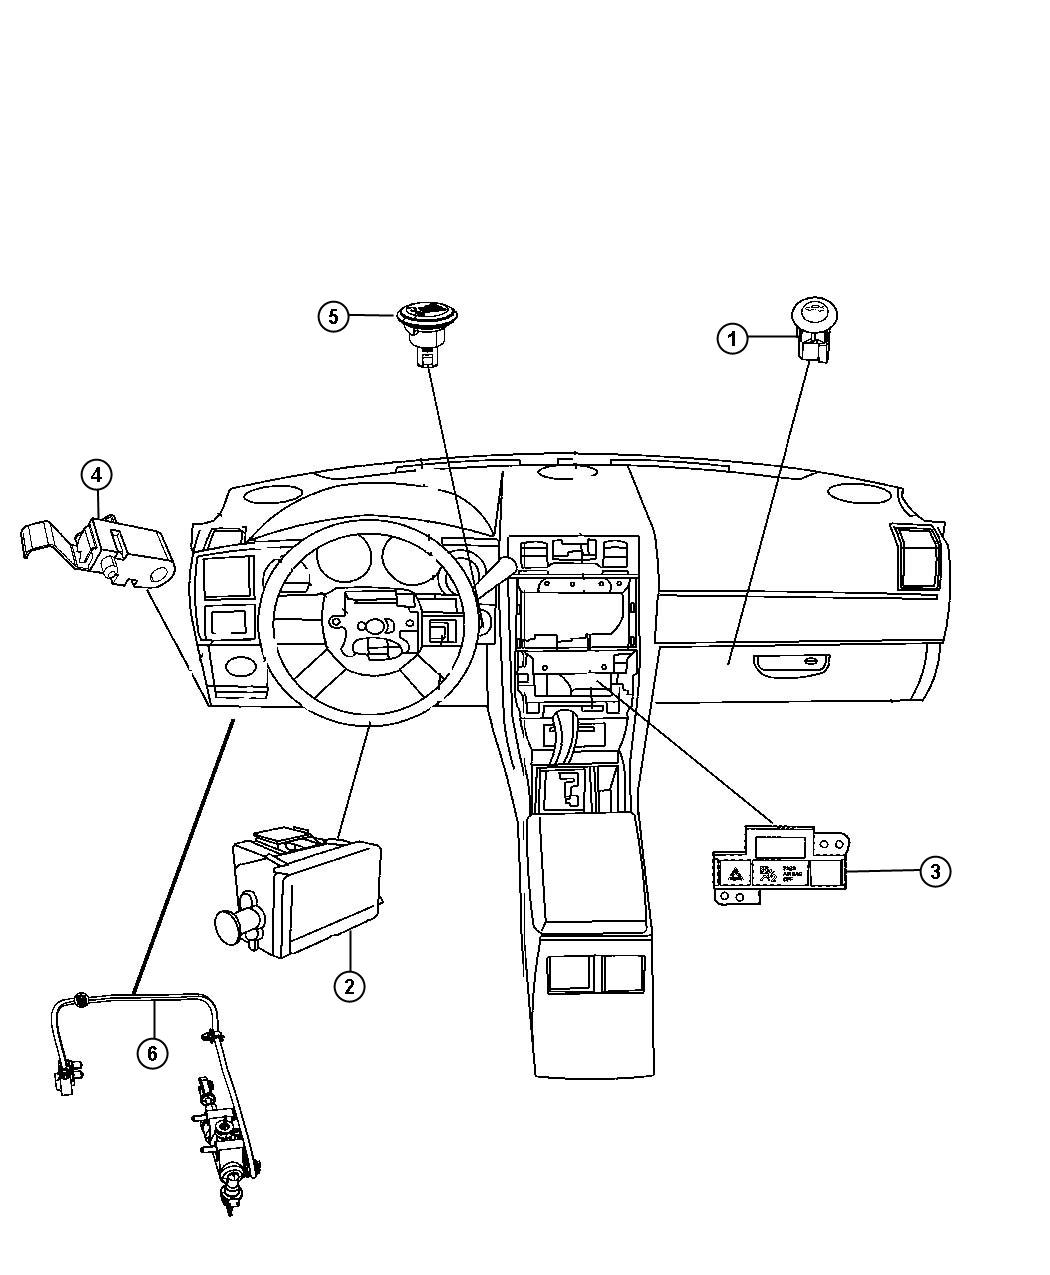 Dodge Challenger Switch Instrument Panel Electronic